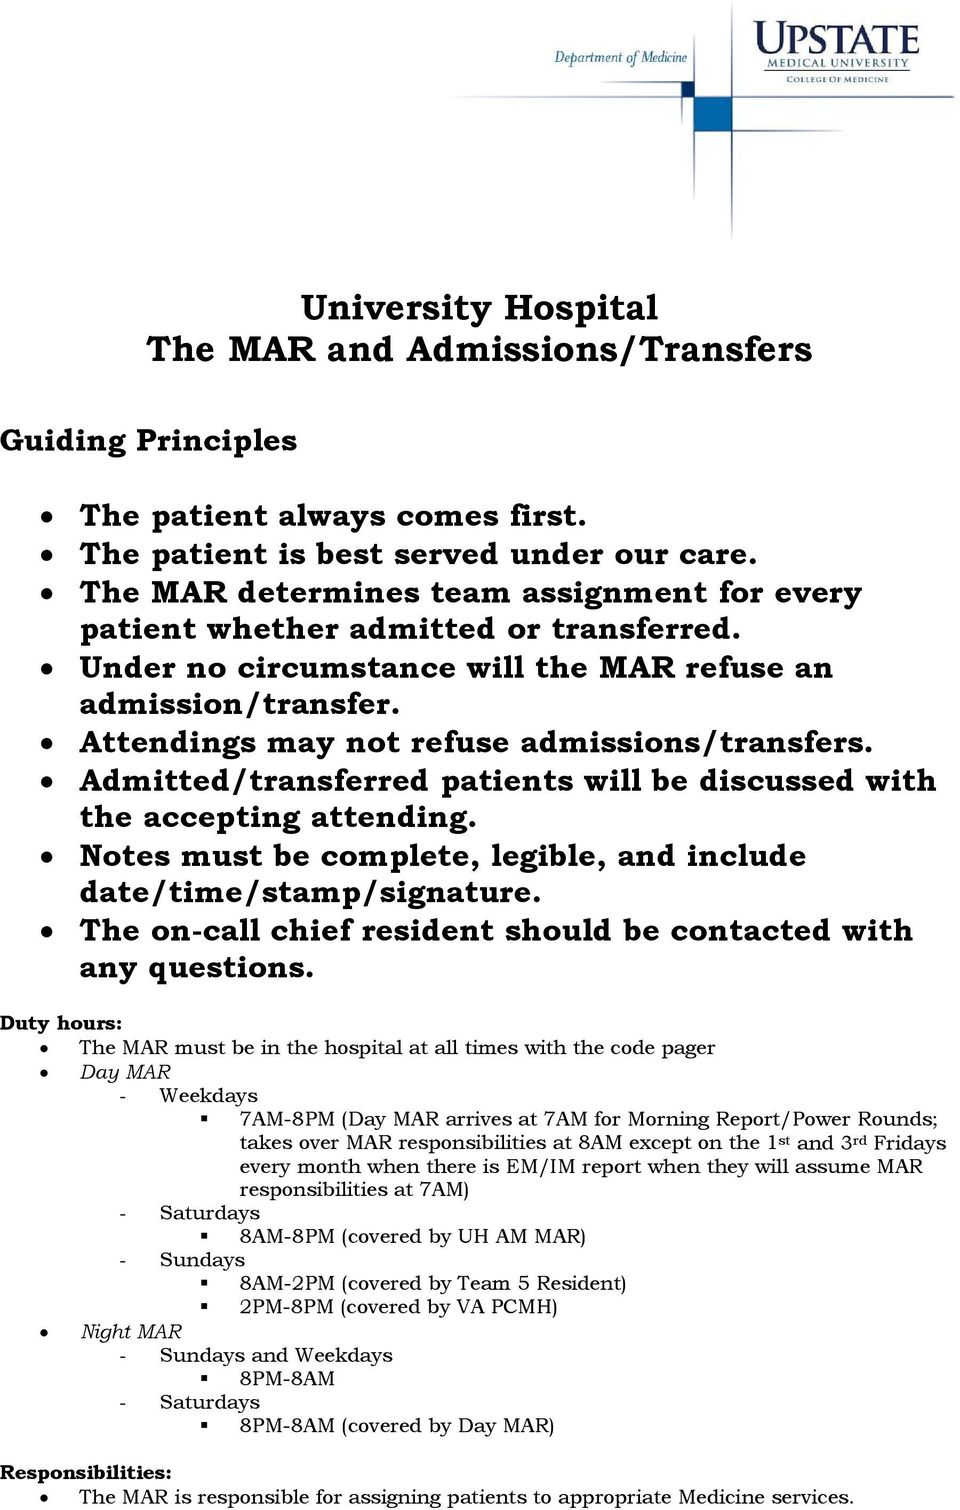 Admitted/transferred patients will be discussed with the accepting attending. Notes must be complete, legible, and include date/time/stamp/signature.